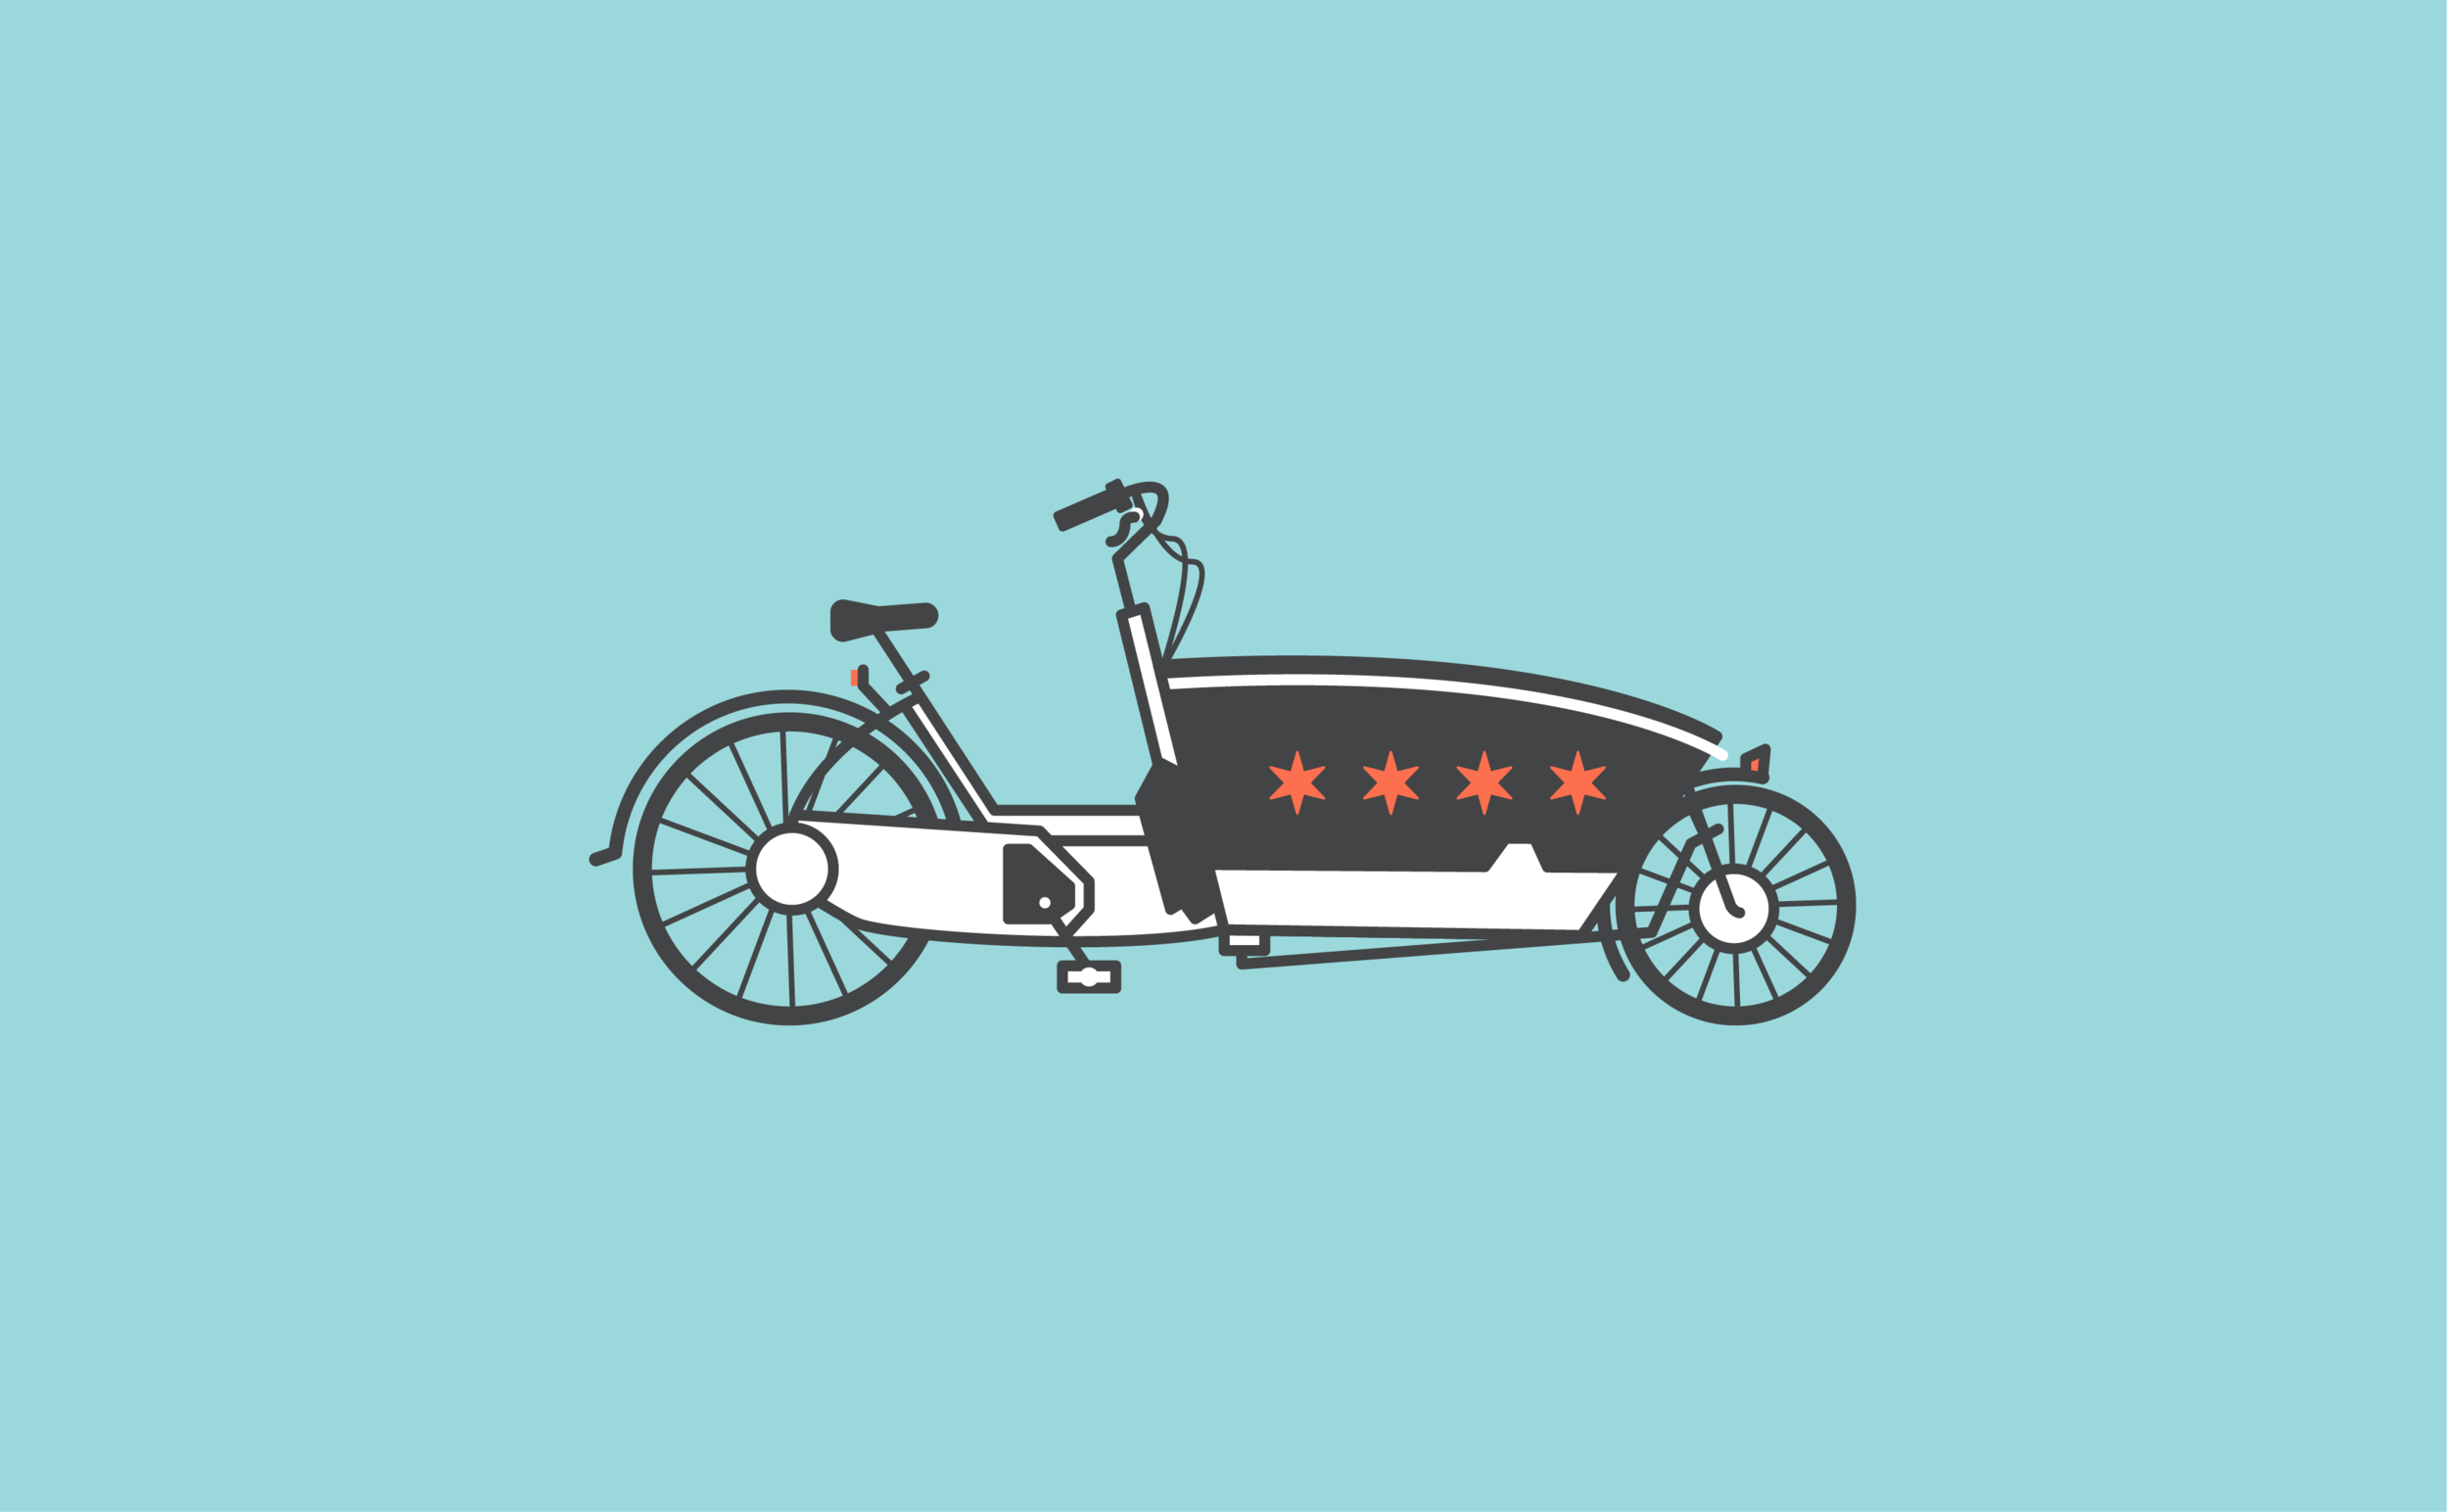 Illustration – Four Star Family Cyclery